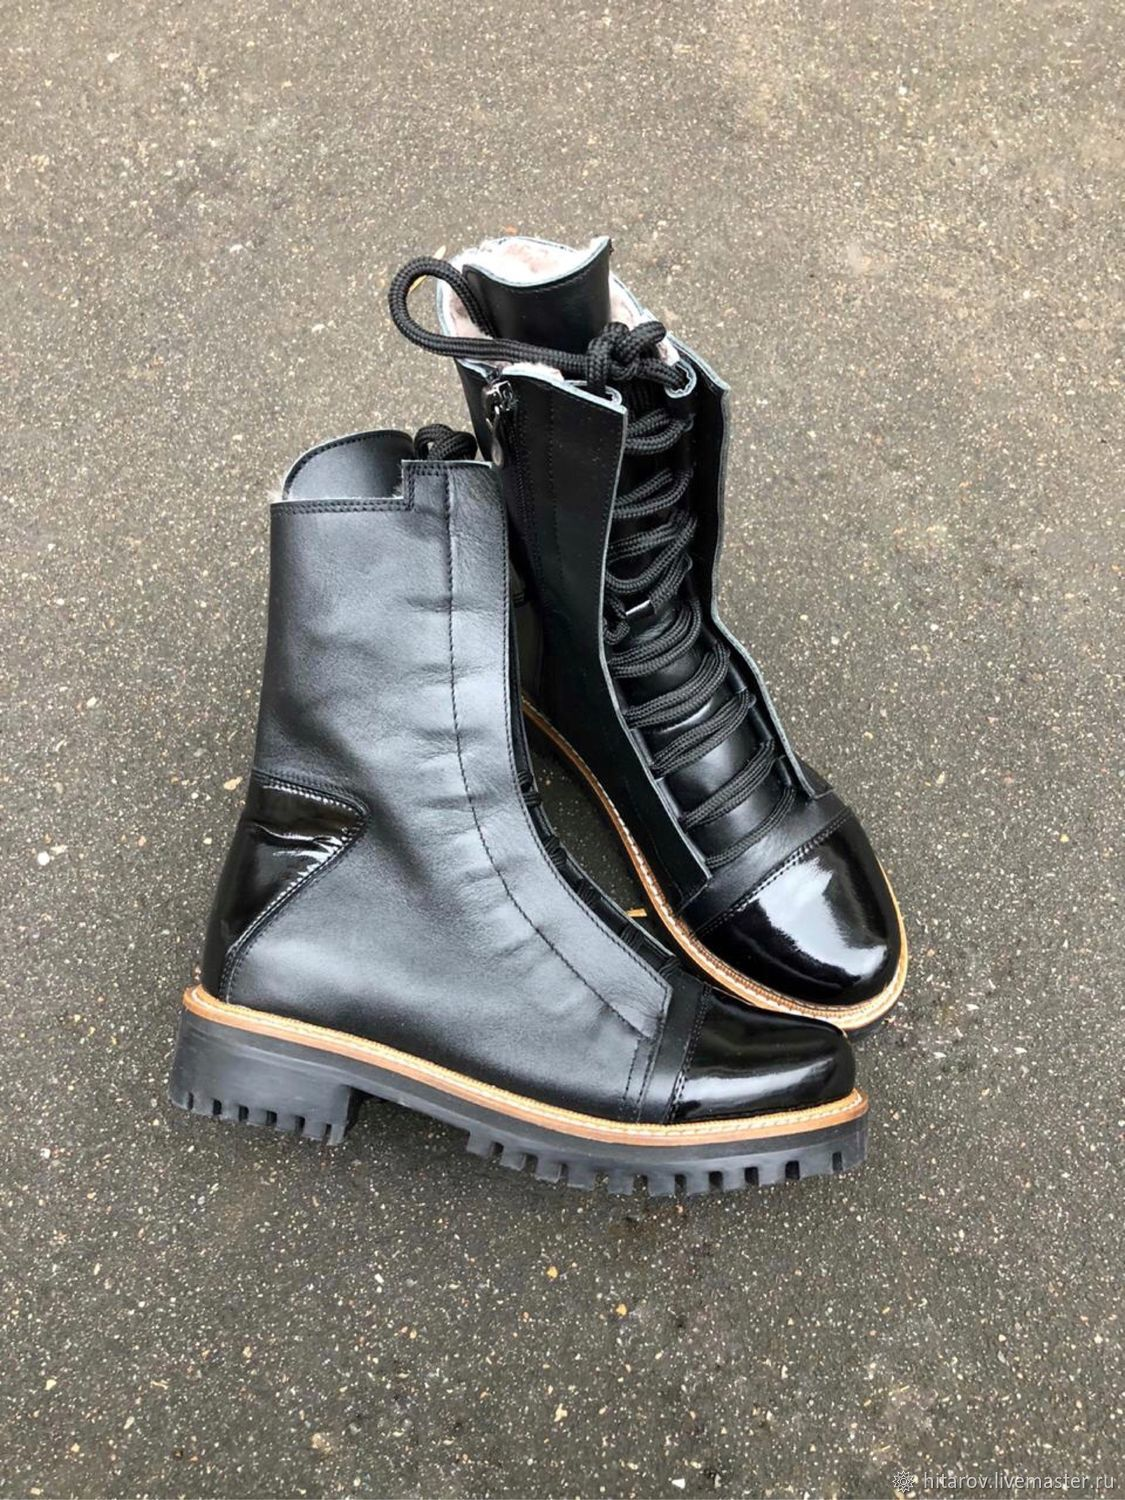 Shoes 'Ultra' black leather / black lacquer beige Welt black sole, Boots, Moscow,  Фото №1